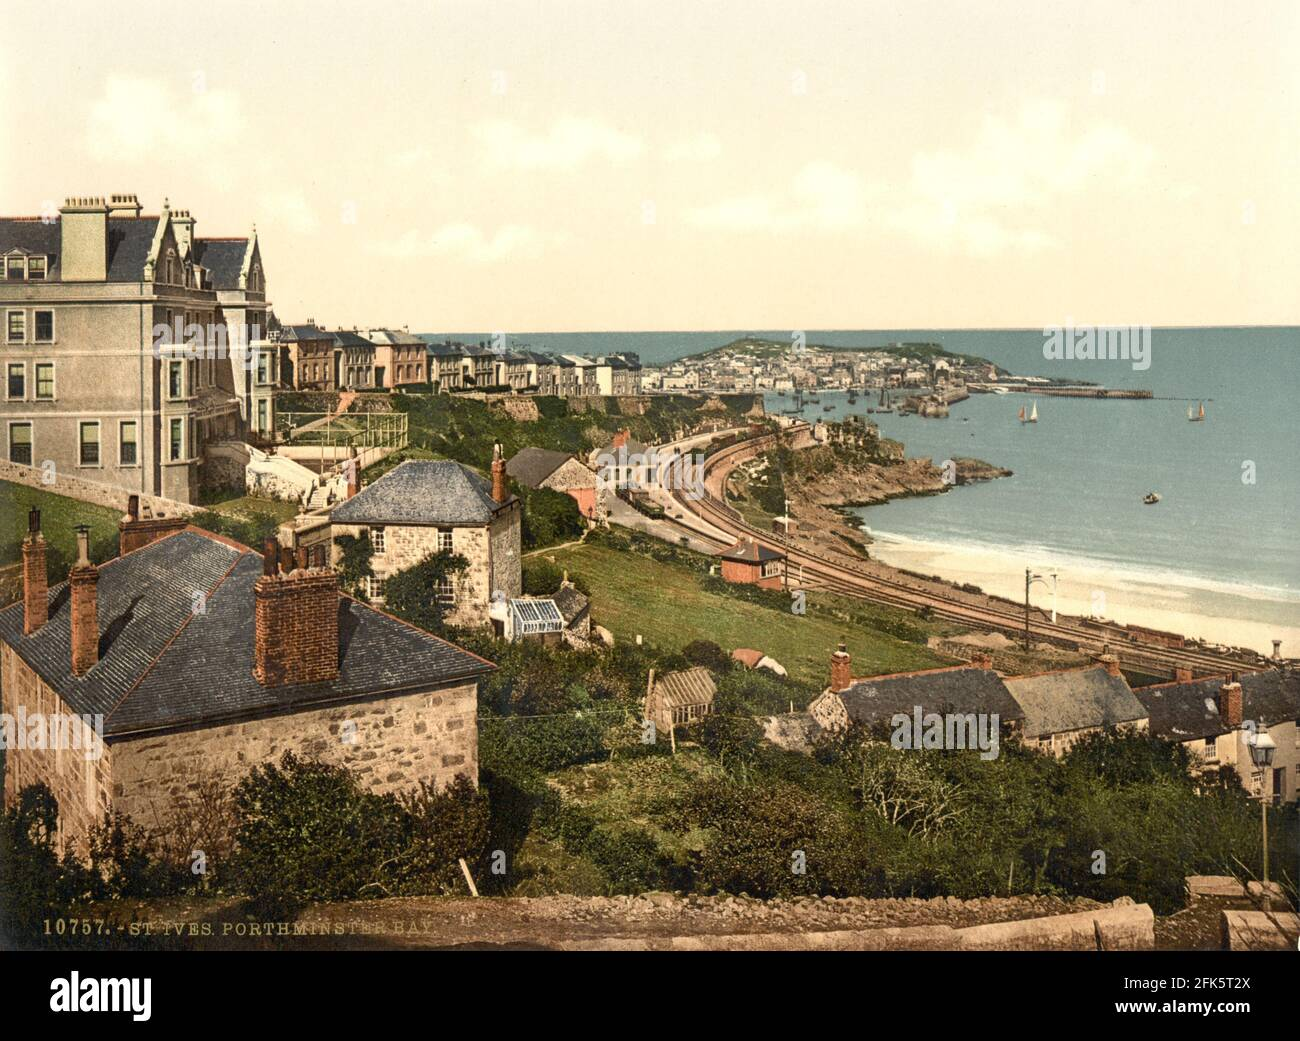 Porthminster Bay St Ives in Cornwall circa 1890-1900 Stock Photo